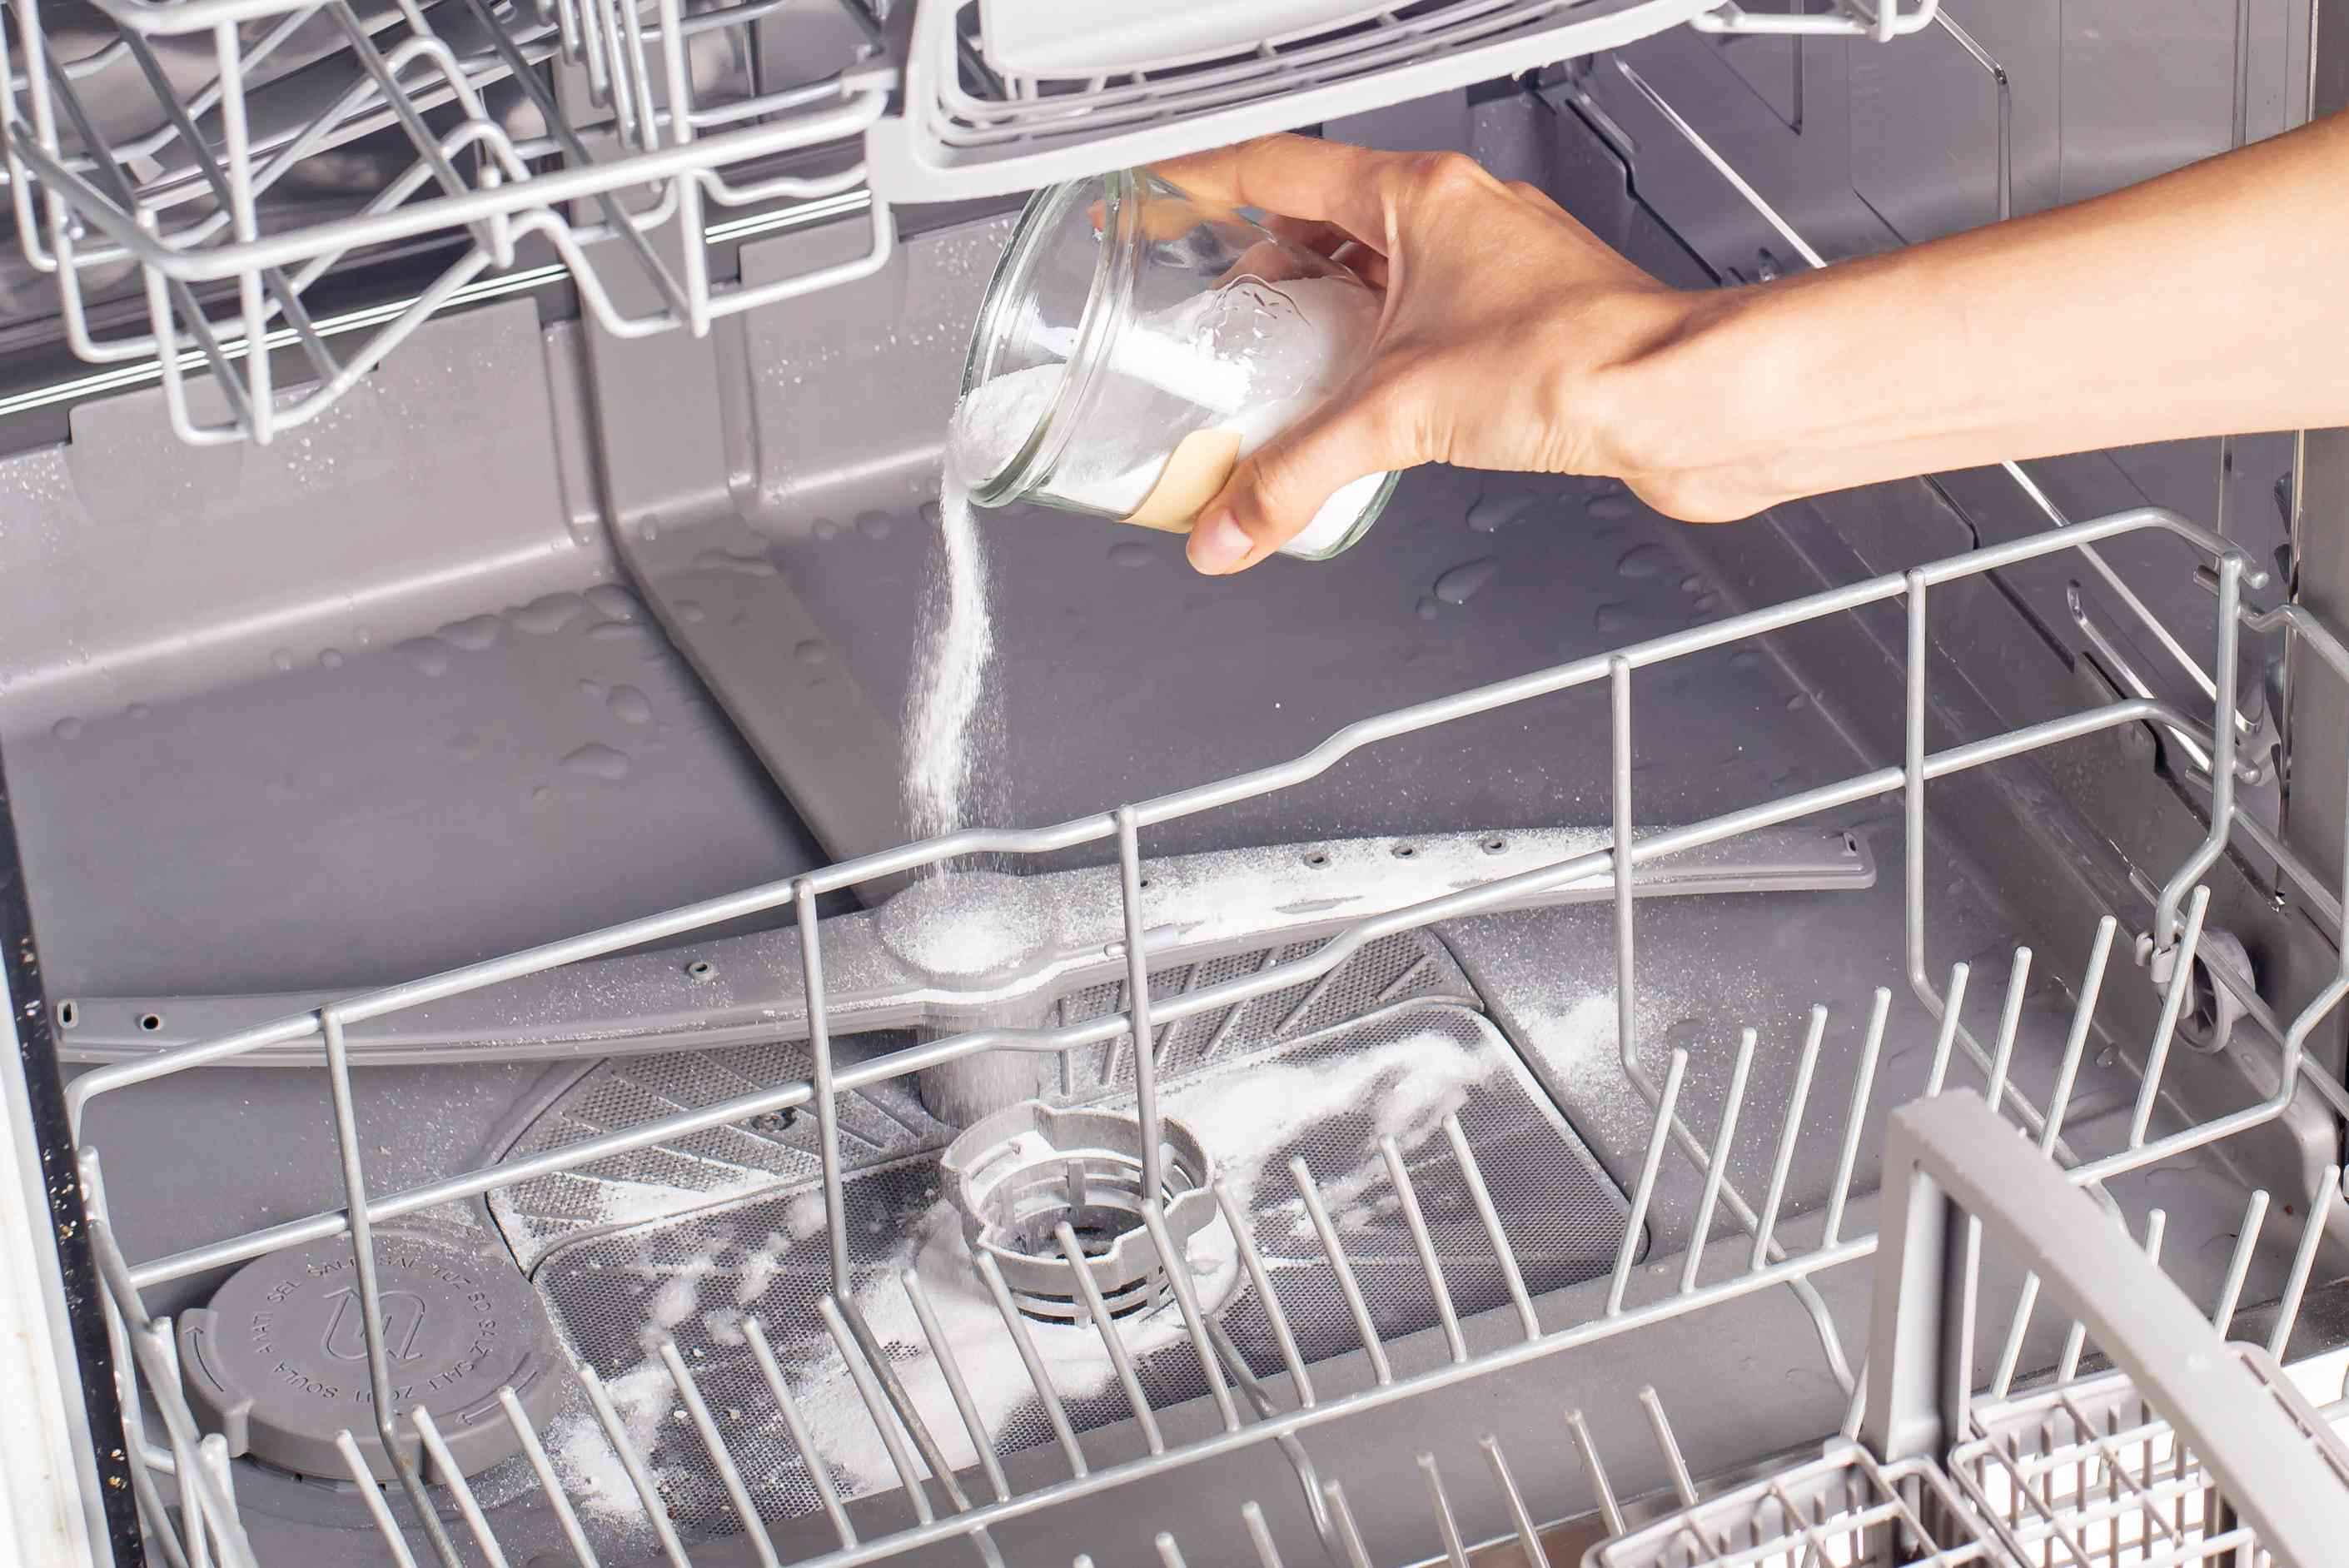 How Clean a Dishwasher